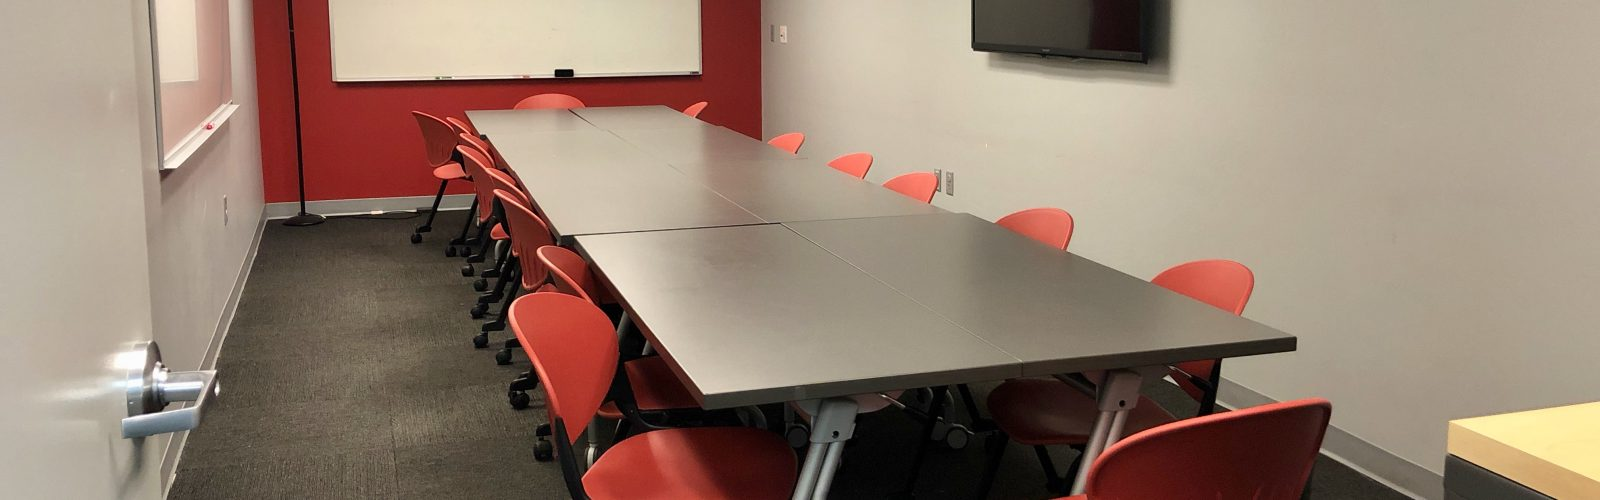 small conference room with about a dozen red chairs, a board to write on, and one screen.